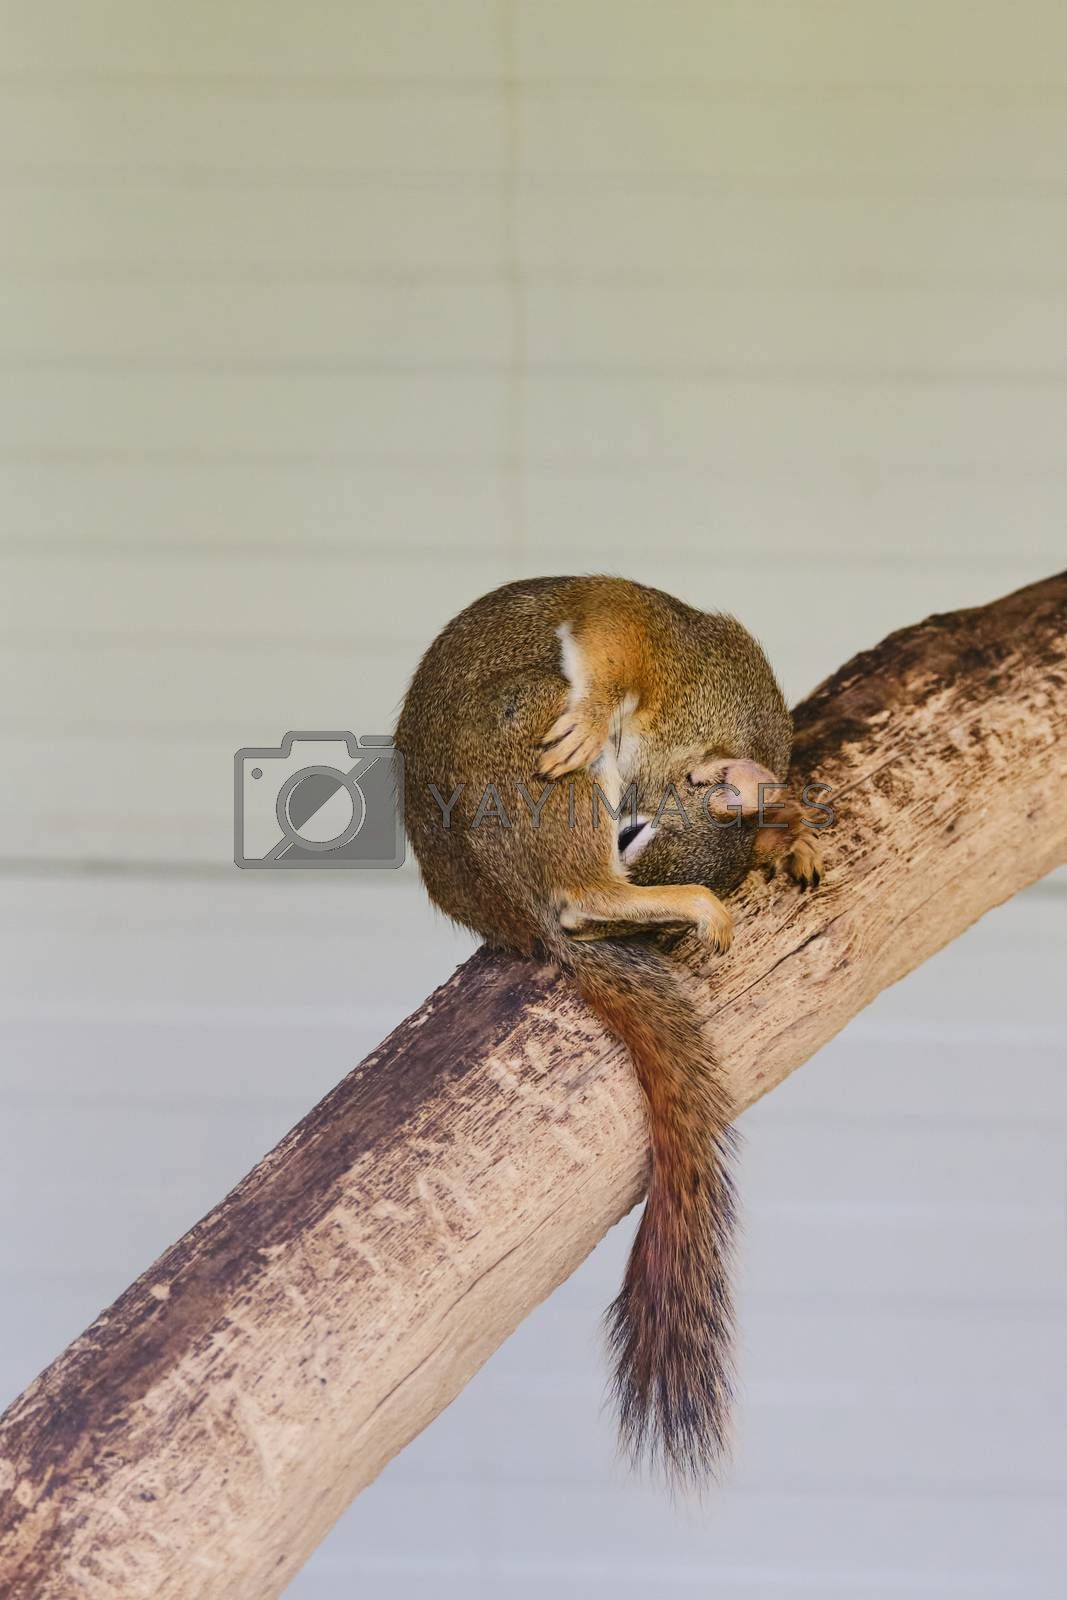 A rodents marmots chipmunks squirrel spotted on a tree trunk on hunting mood. Animal behavior themes. Focus on eye.